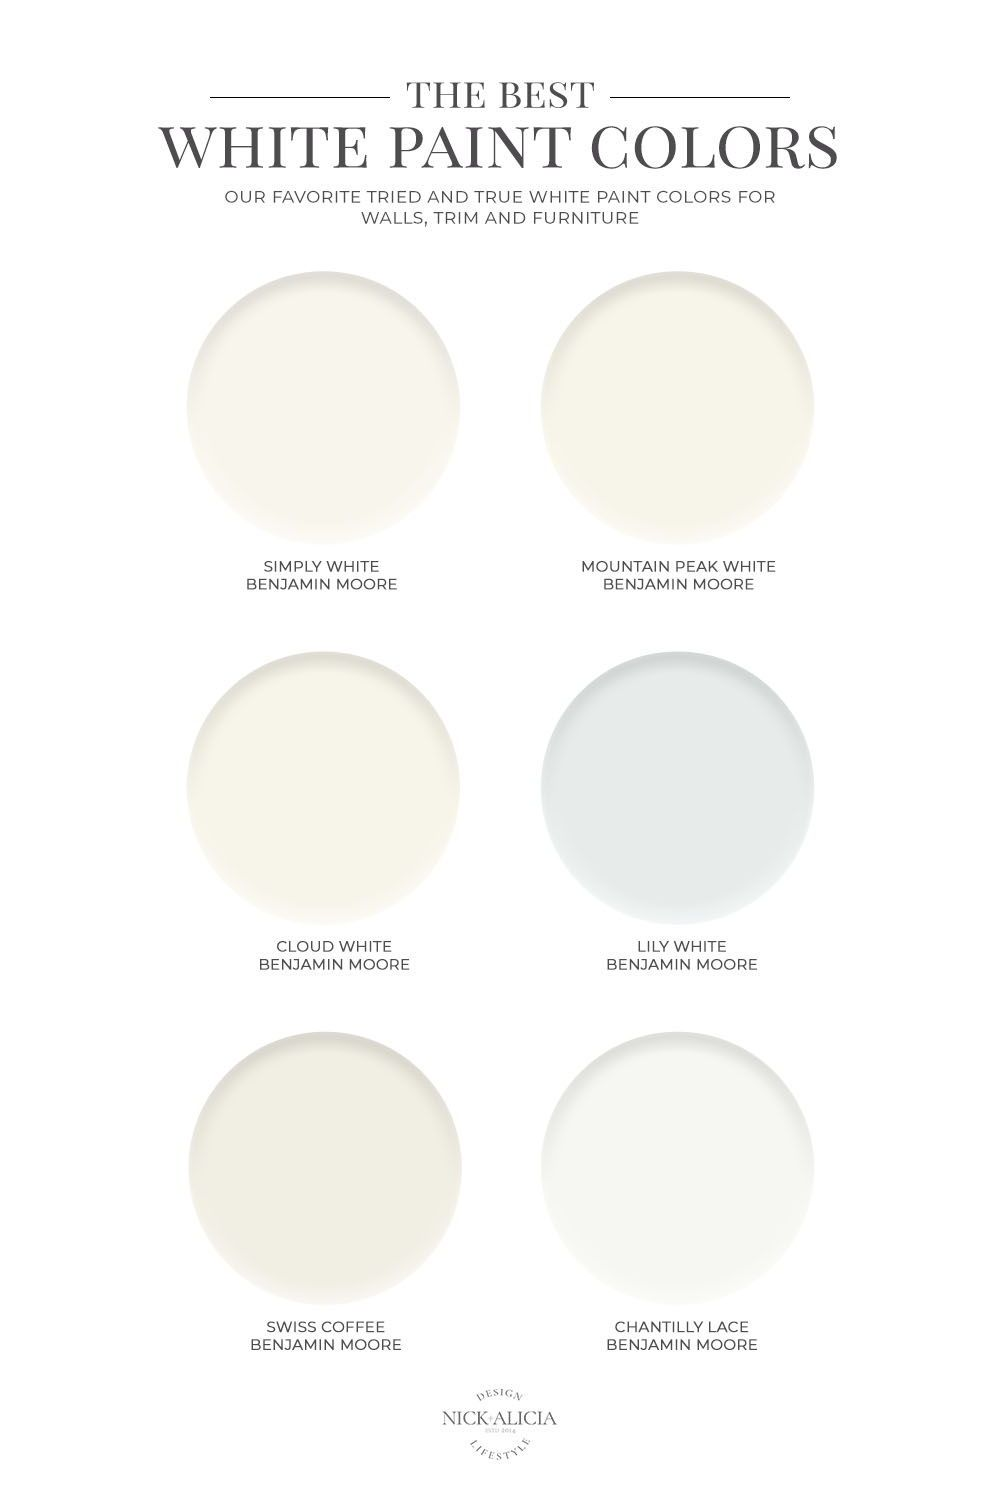 The Best White Paint Colors In 2020 With Images Best White